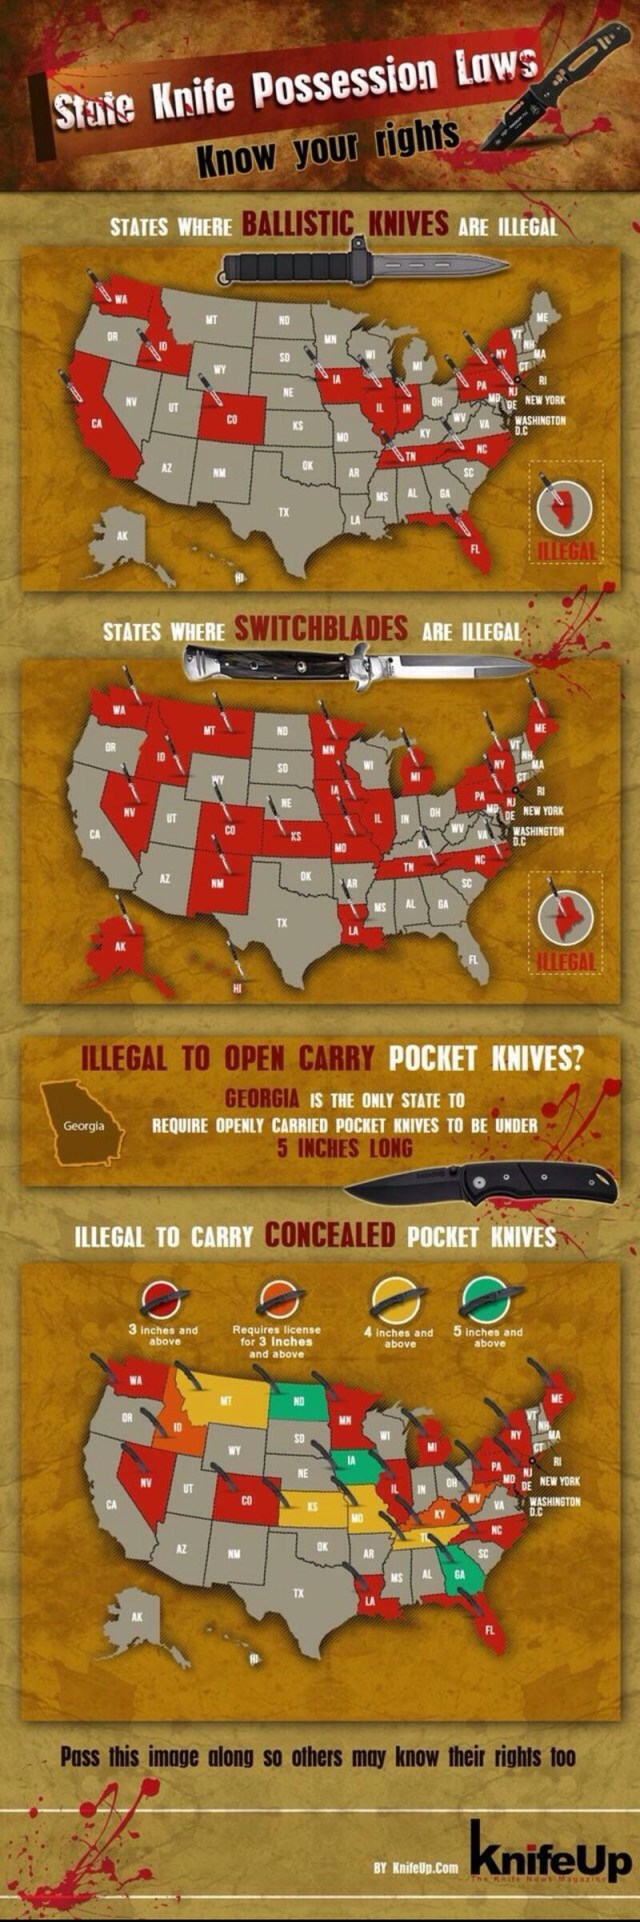 State Knife Possession Laws